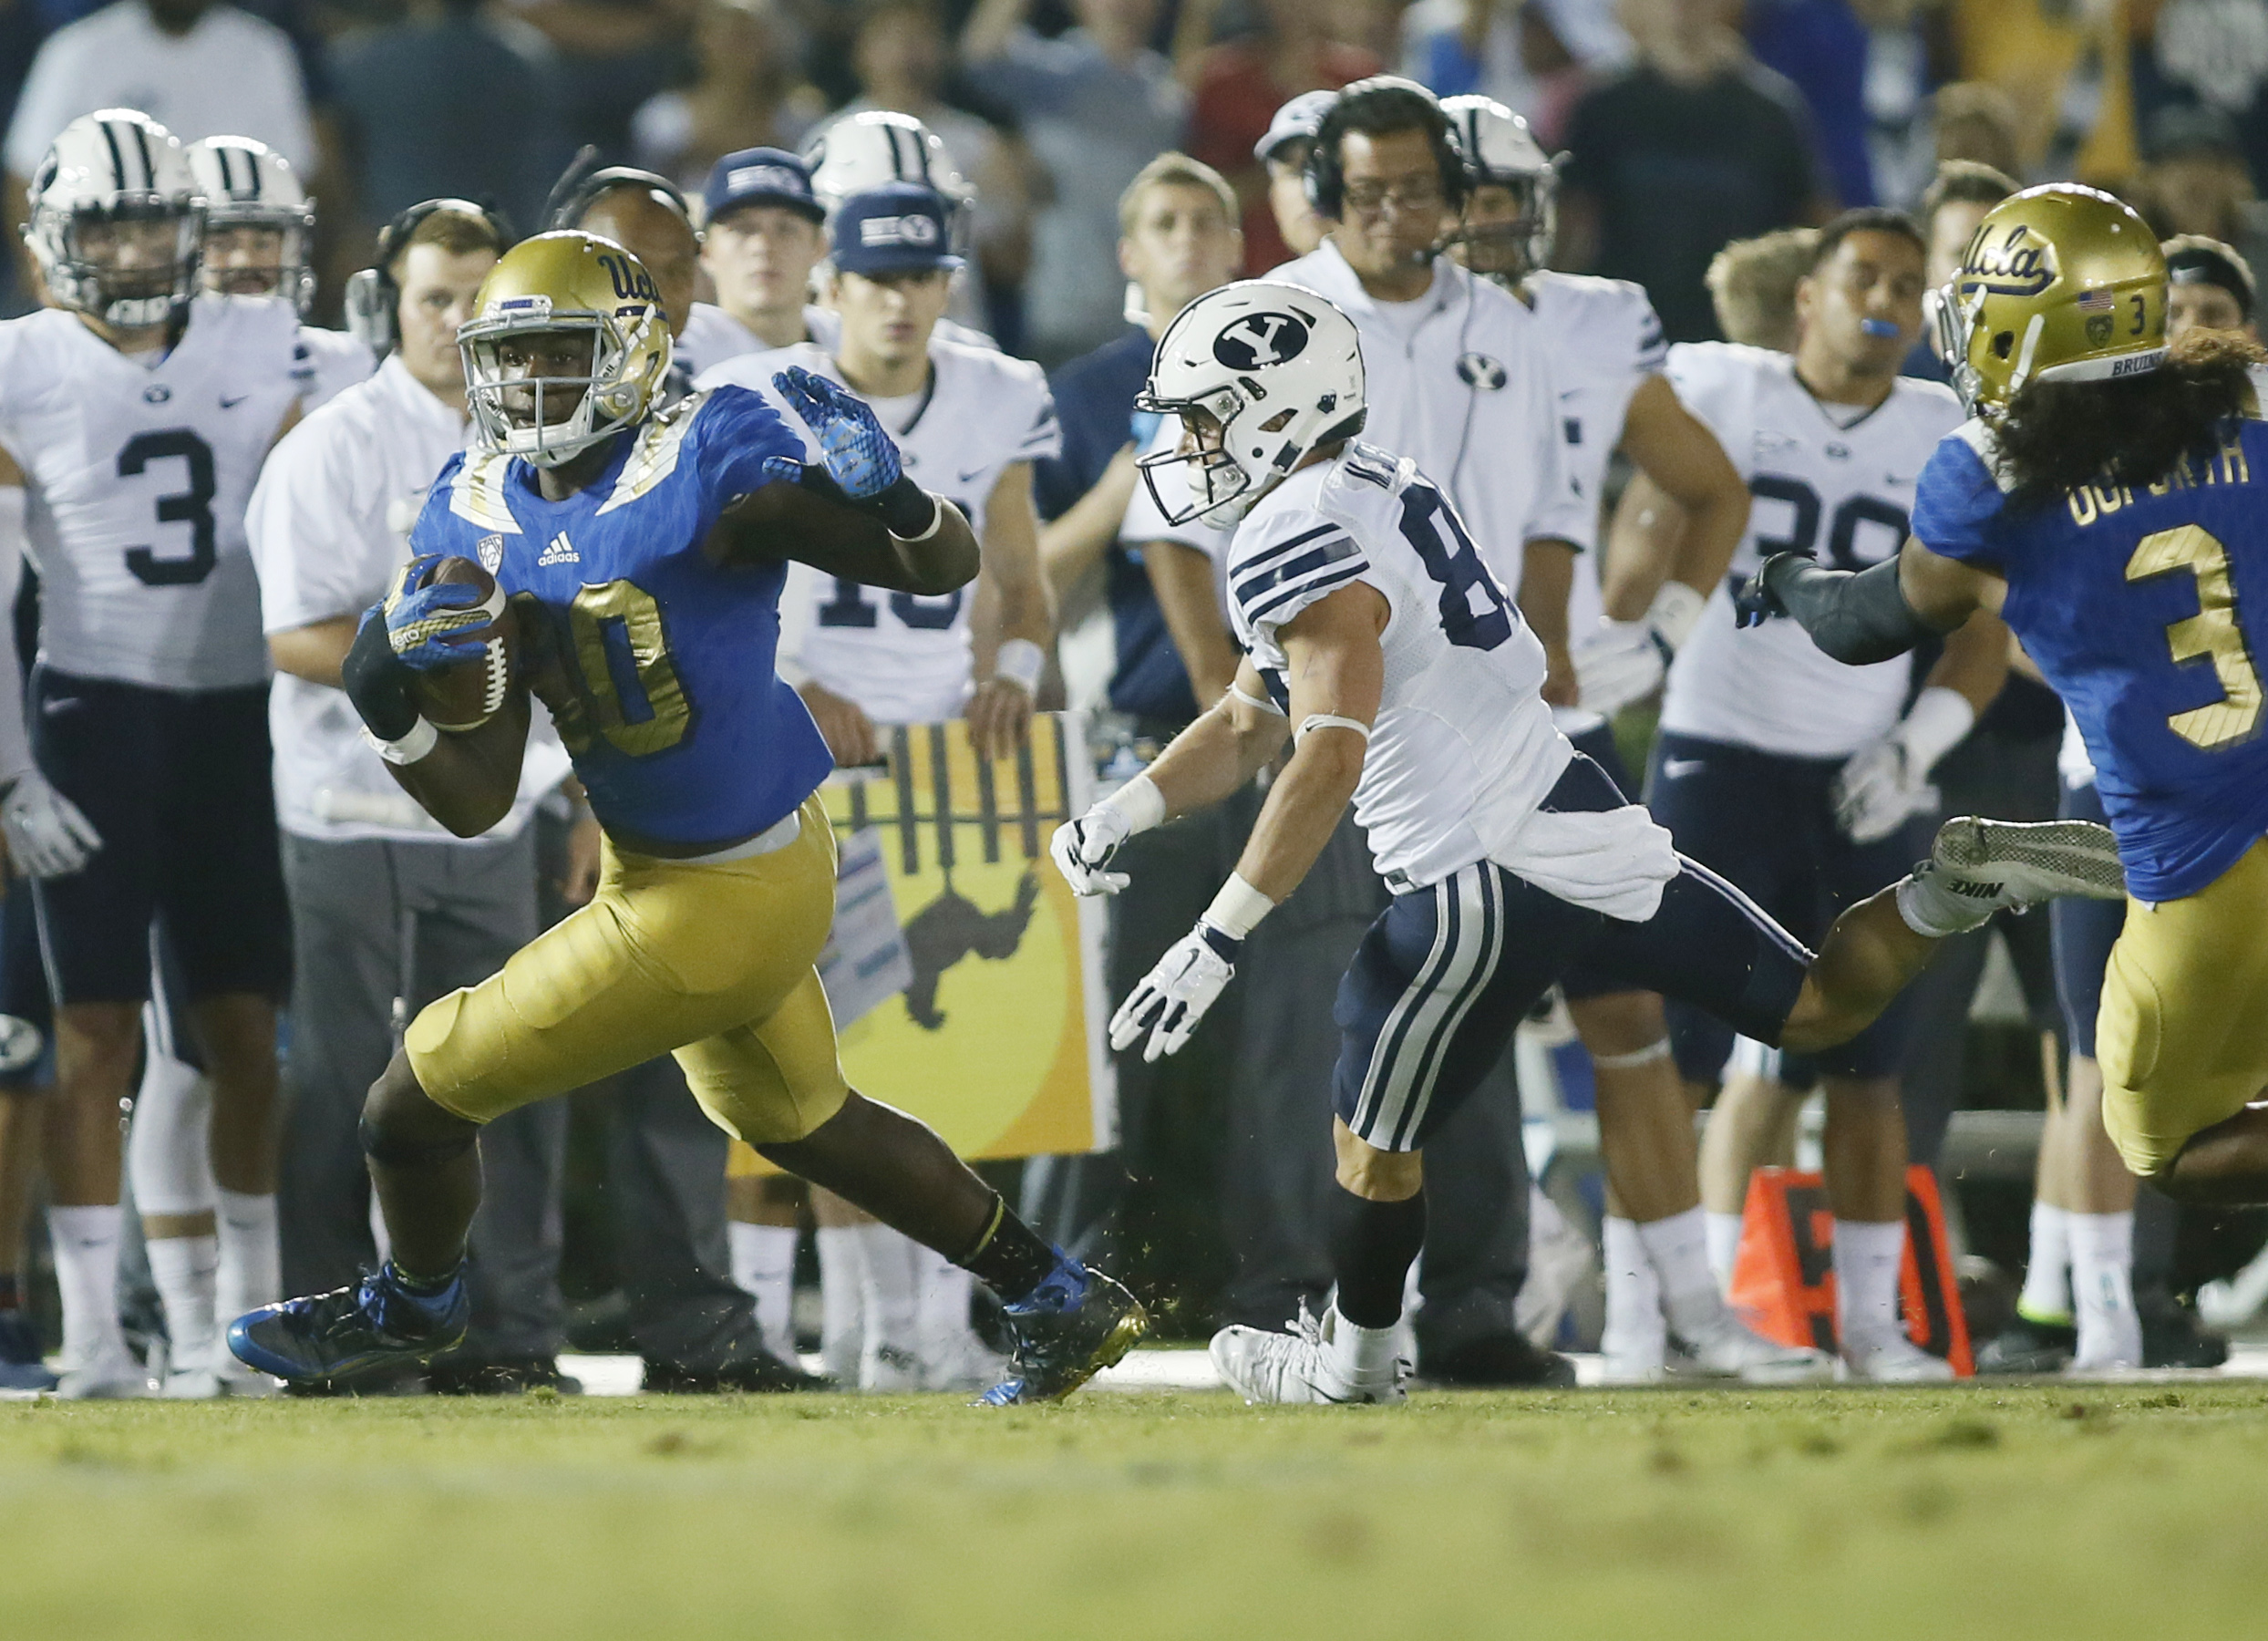 UCLA linebacker Myles Jack runs with the ball after intercepting the ball while BYU wide receiver Mitchell Juergens runs after him late in the fourth quarter of an NCAA college football game, Saturday, Sept. 19, 2015, in Pasadena, Calif. UCLA won 24-23. (